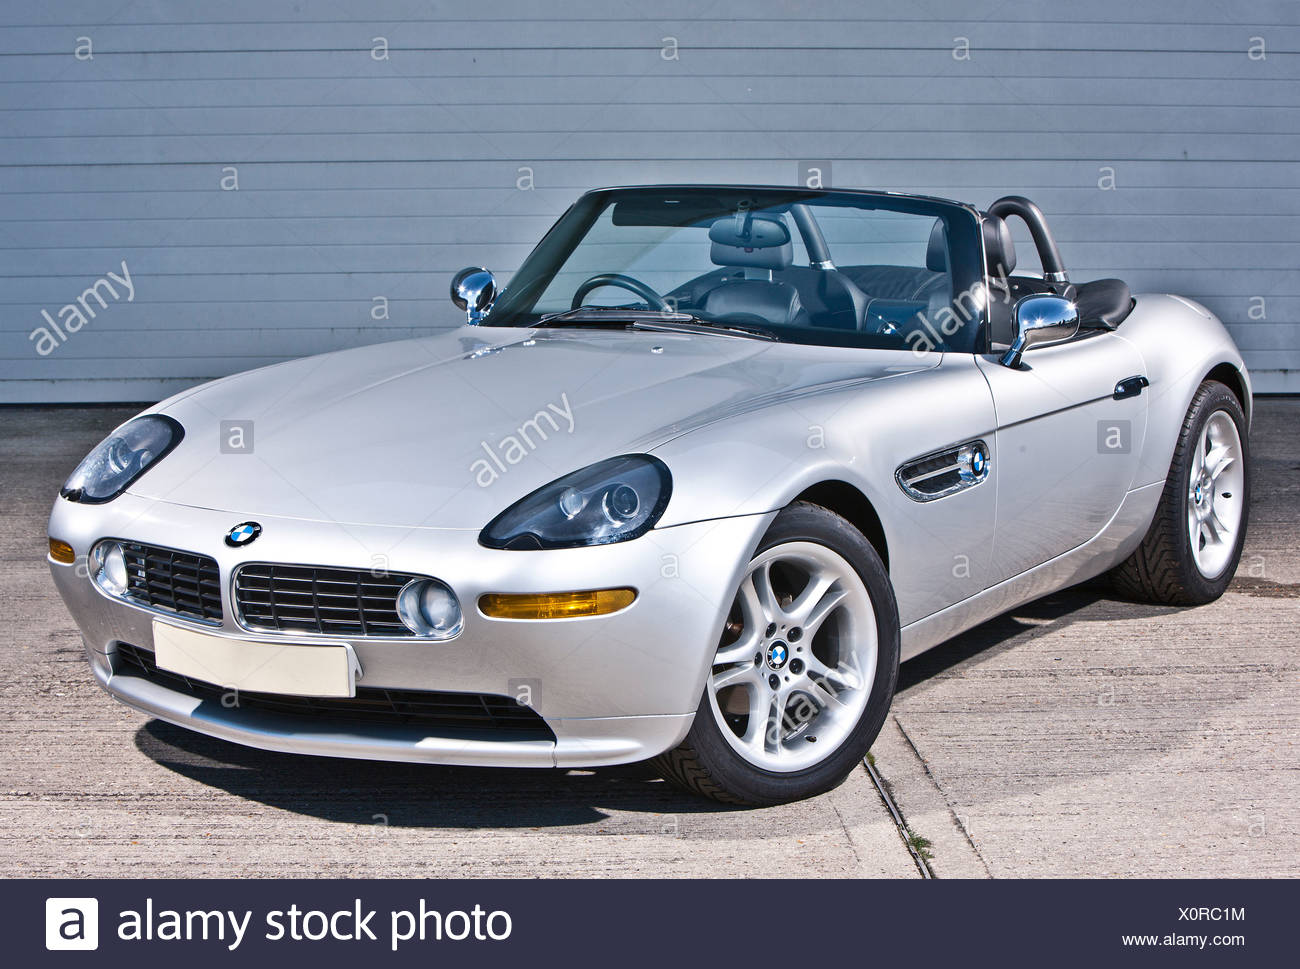 Bmw Seat Stock Photos Amp Bmw Seat Stock Images Alamy